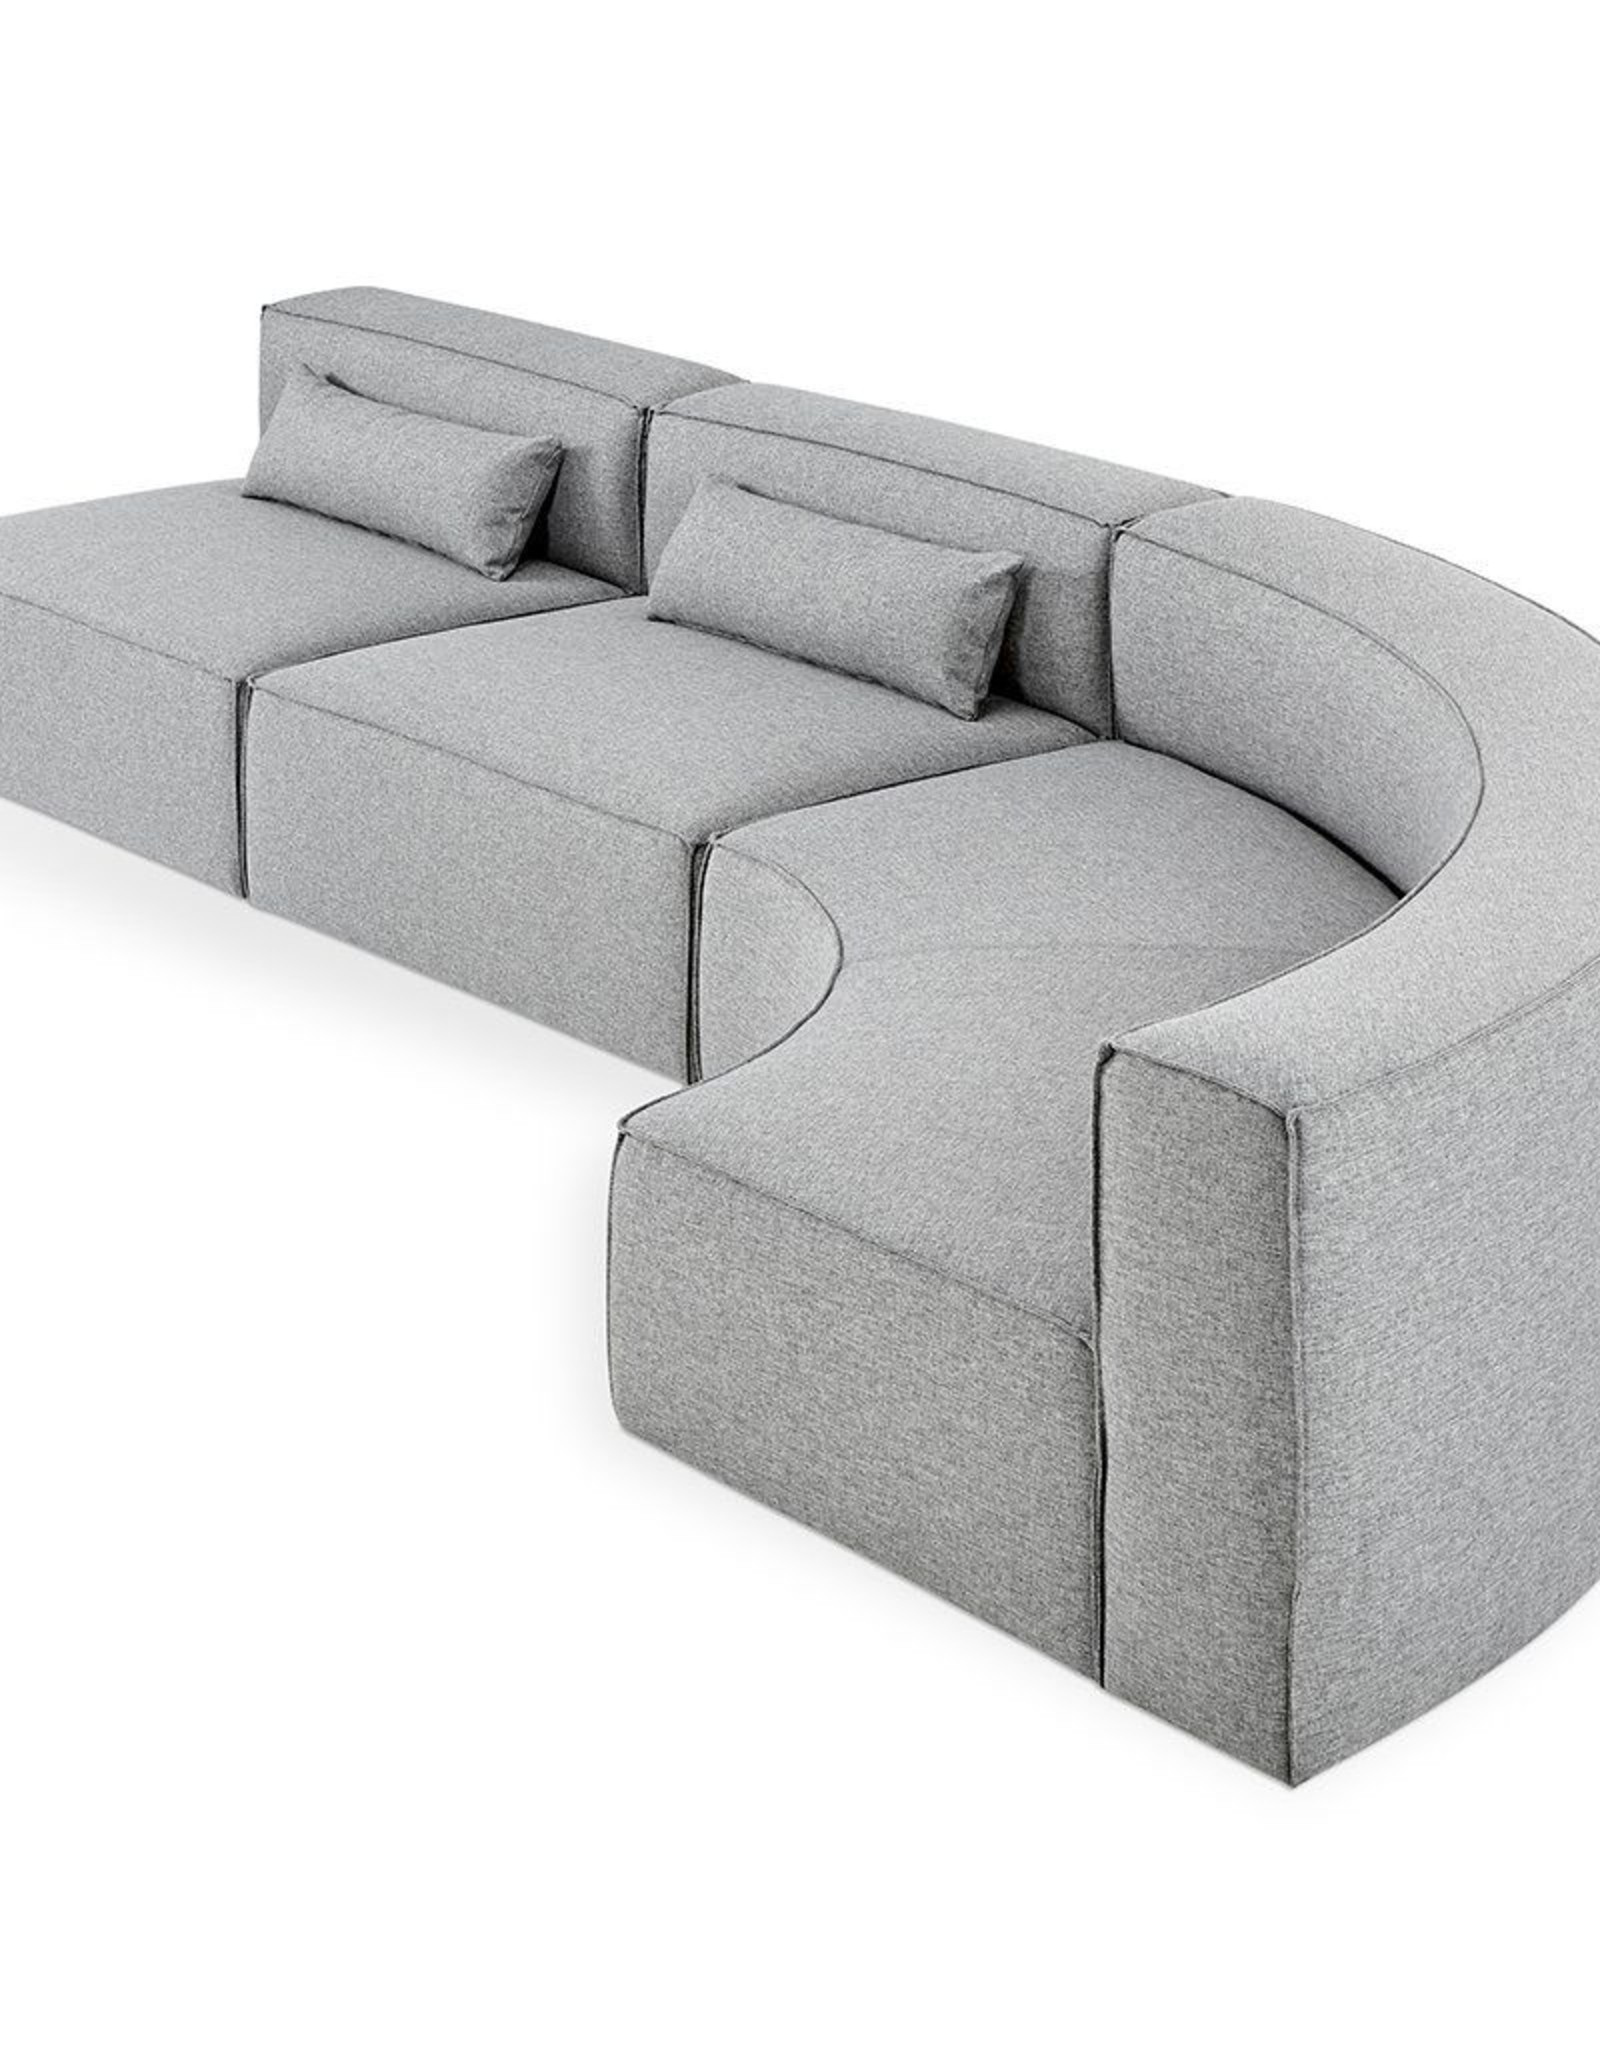 Gus* Modern Mix Modular Sectional, Arc